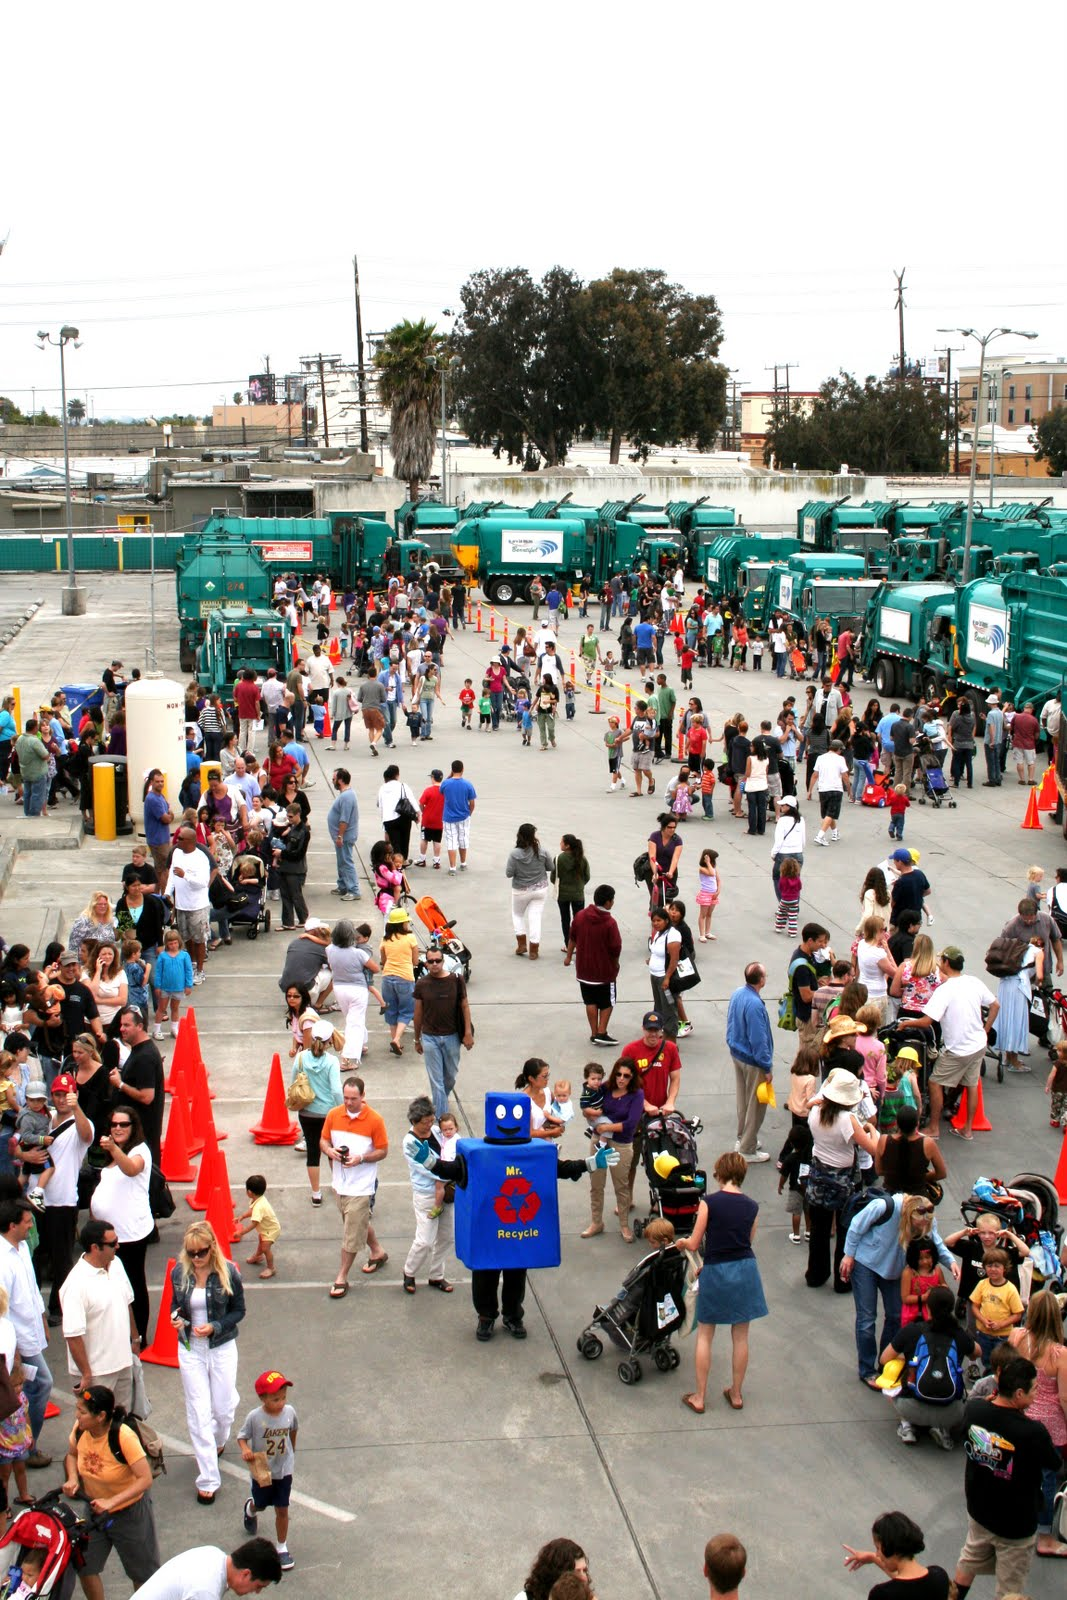 Record Attendance With More Than 3,000 At The West LA Open House!